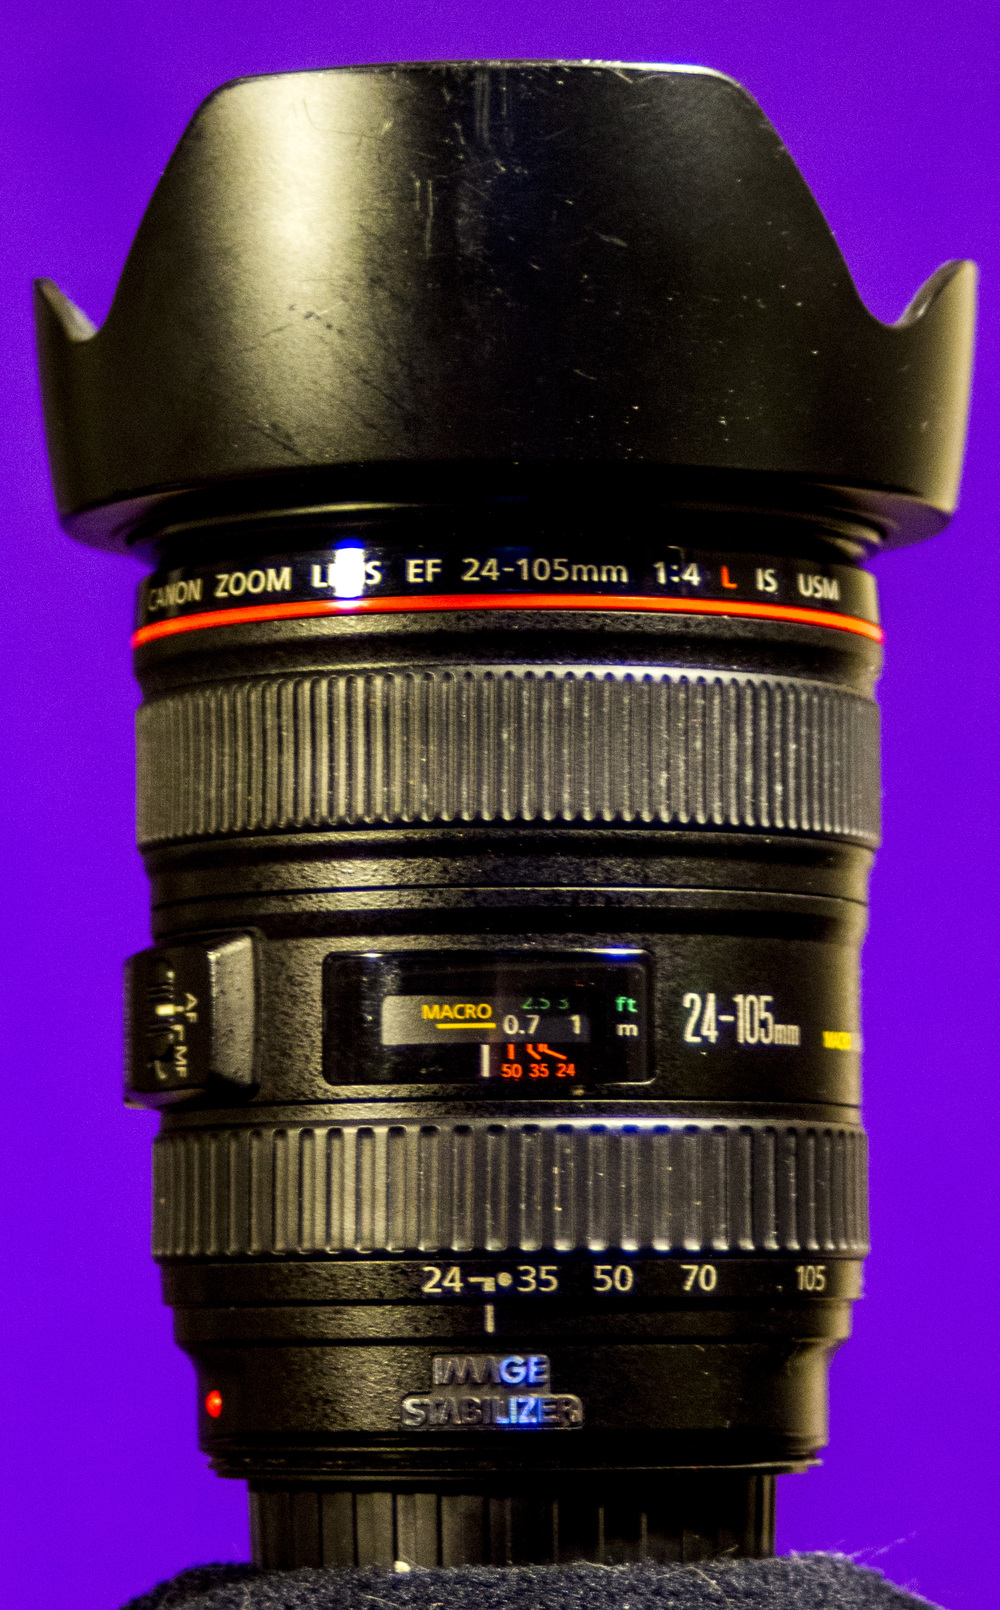 Canon EF 24-105 f4L IS USM A great general-purpose lens I use OFTEN!